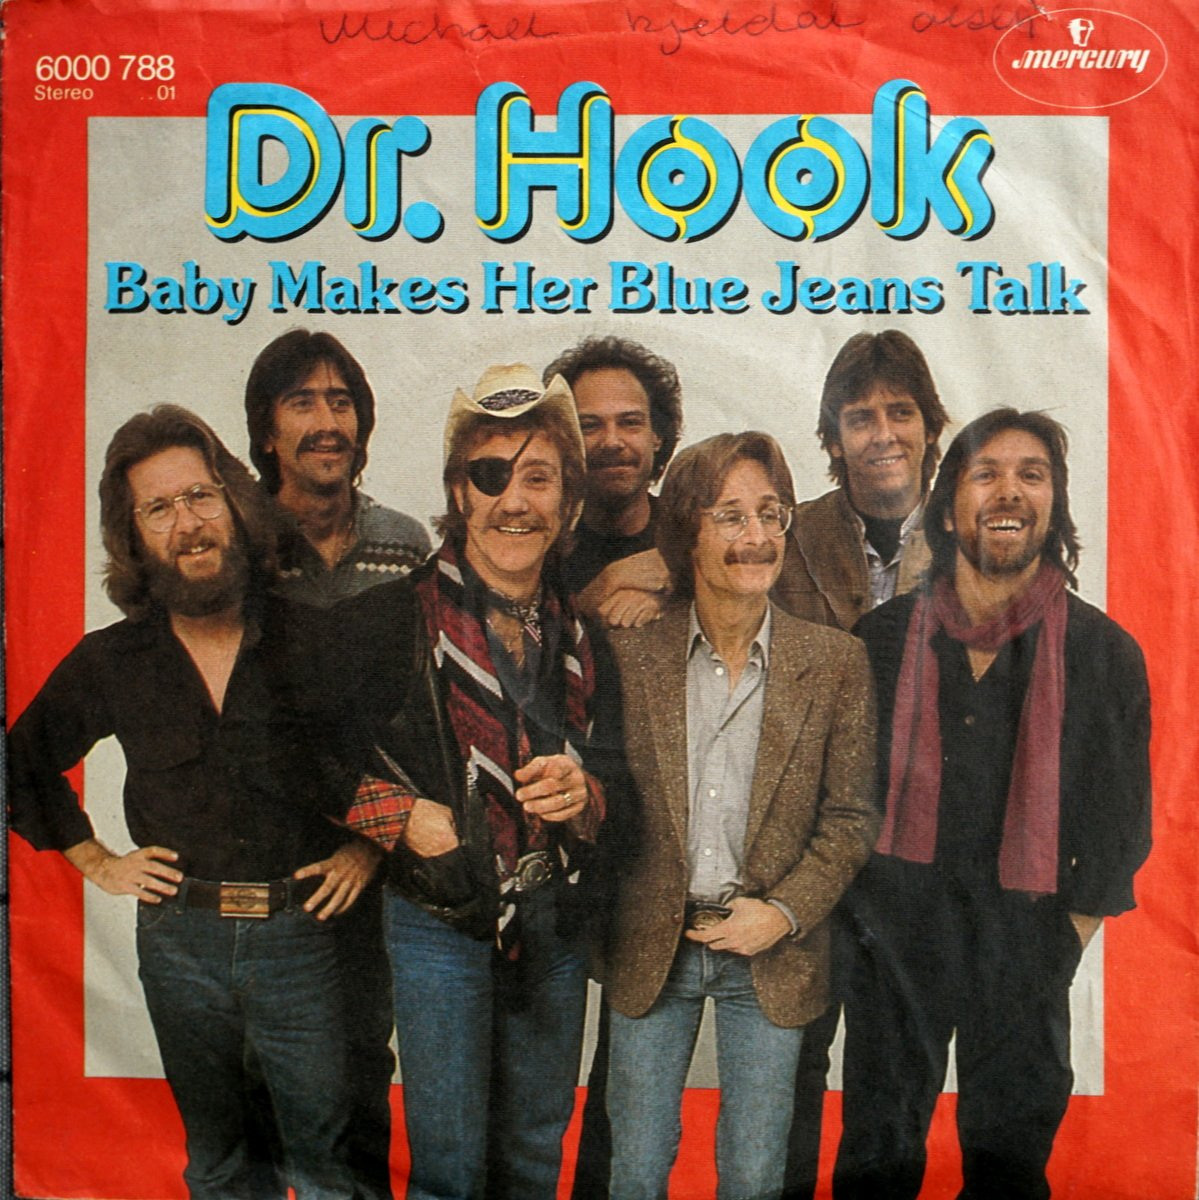 S PD A1 - 6000 788 - Baby Make Her Blue Jeans Talk - 1983 - DE